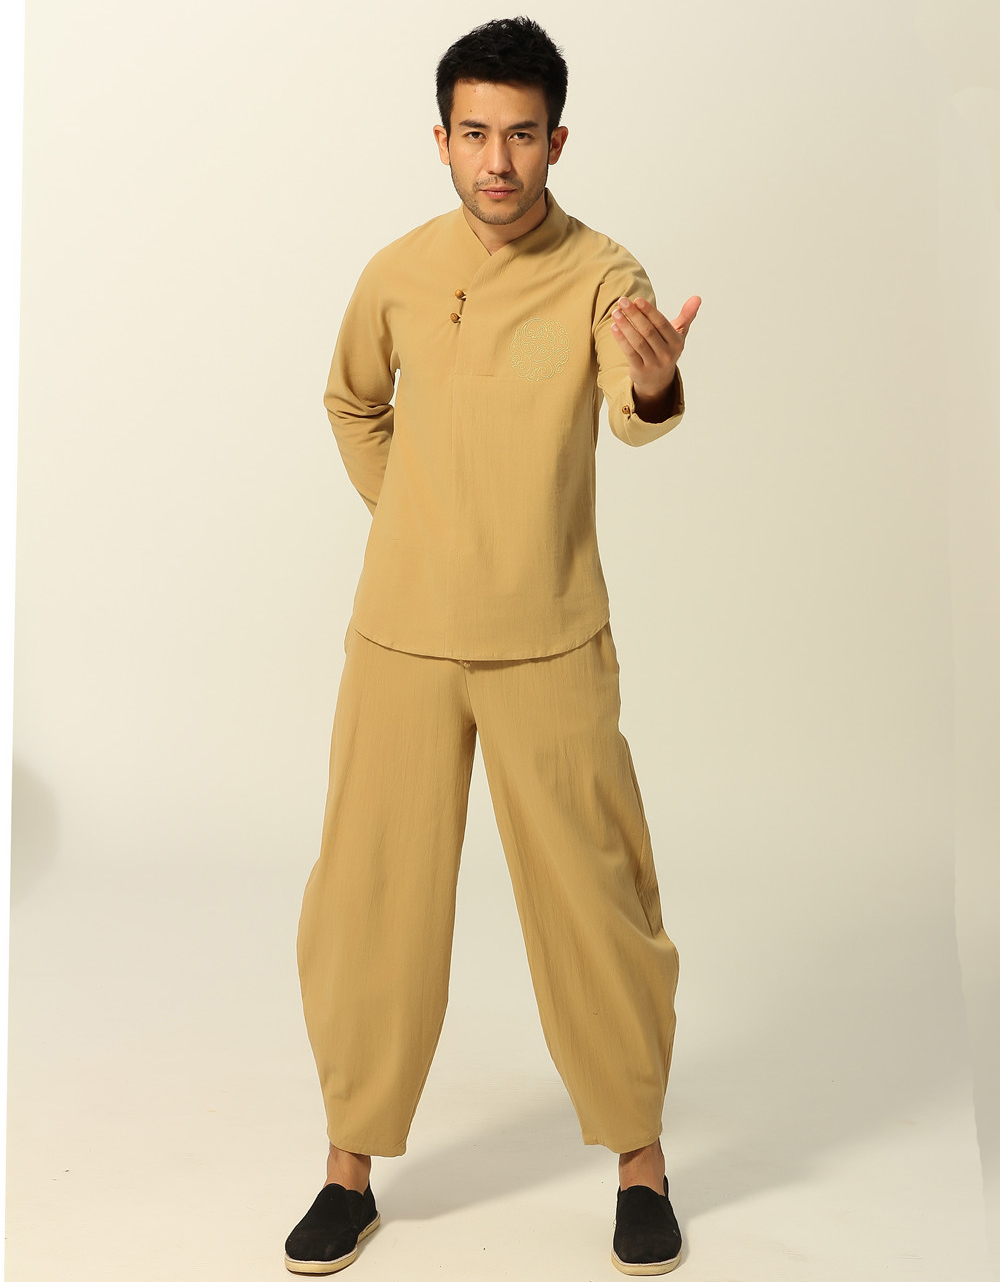 New Arrival Chinese Men's Cotton Kung Fu Suit Tai Chi Wushu Sets Long Sleeve Shirt&Loose Full Length Pants Trousers Size M-XXXL